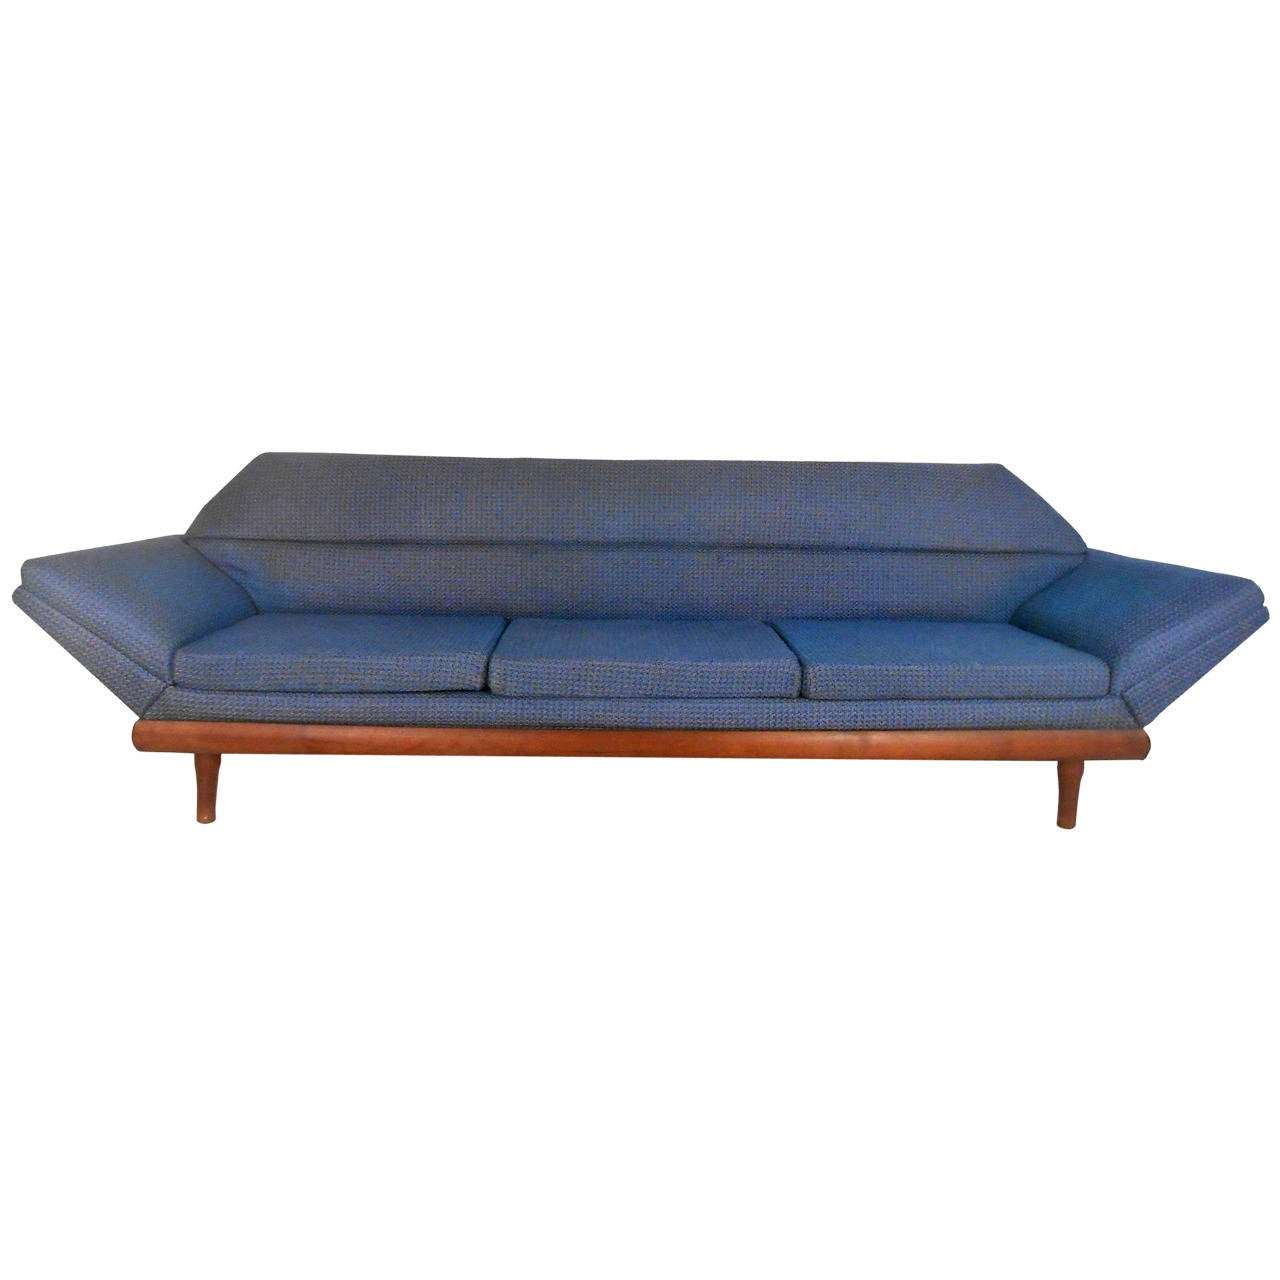 mid century modern adrian pearsall style sofa at 1stdibs